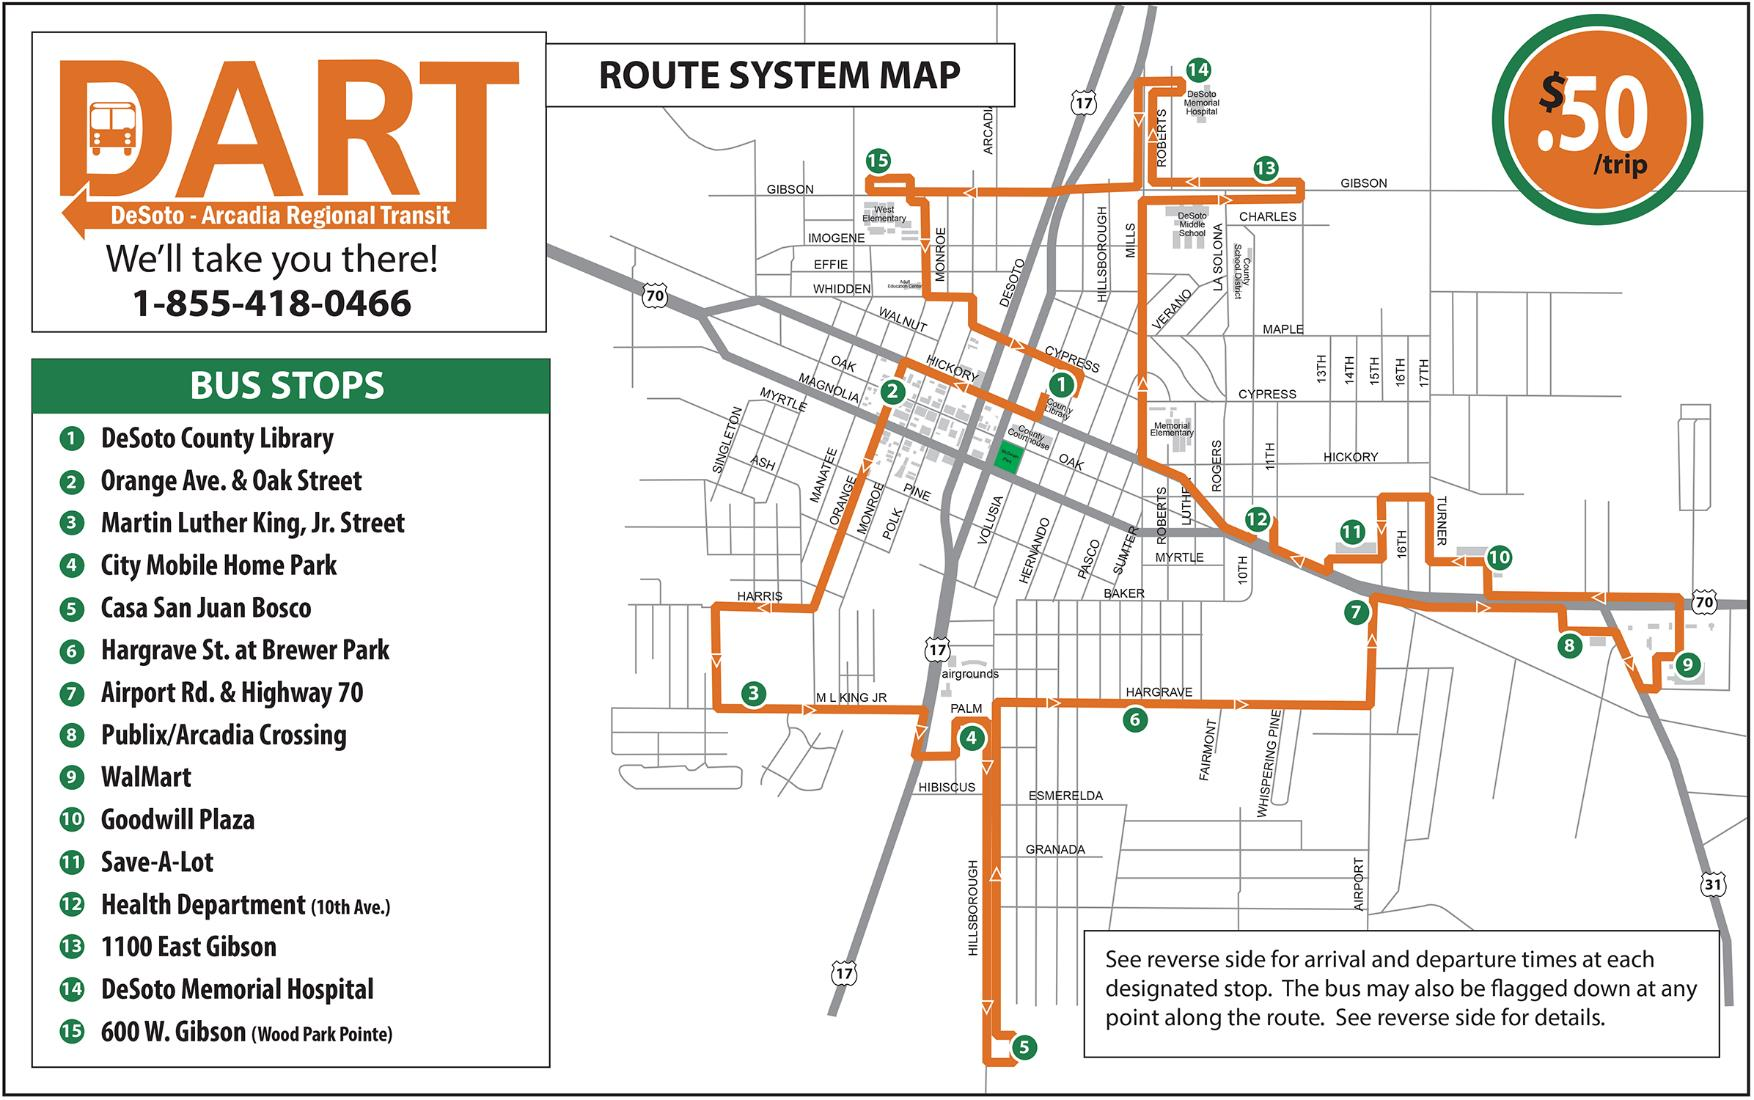 DART Route System Map